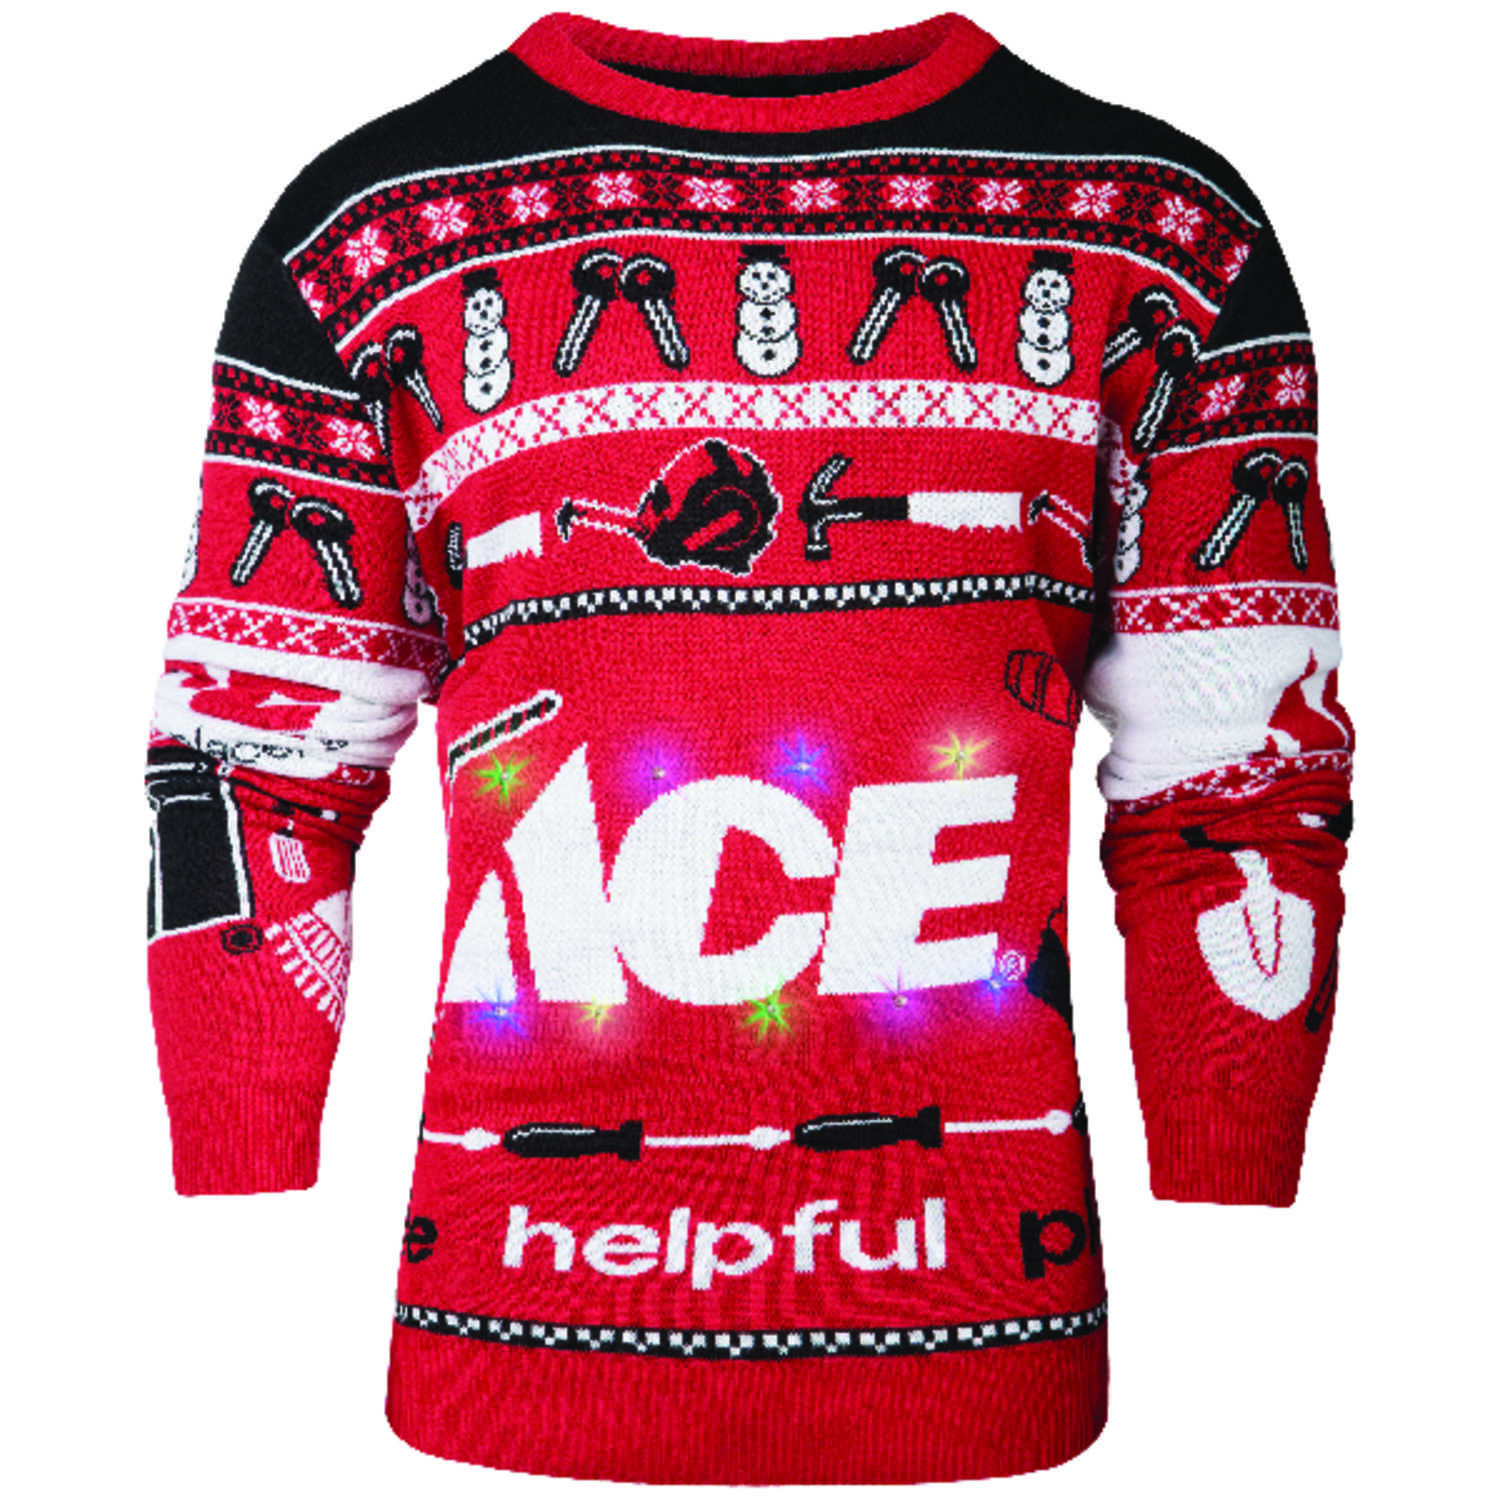 Ace  XXL  Long Sleeve  Men's  Crew Neck  Red/White/Black  Ace Ugly Sweater